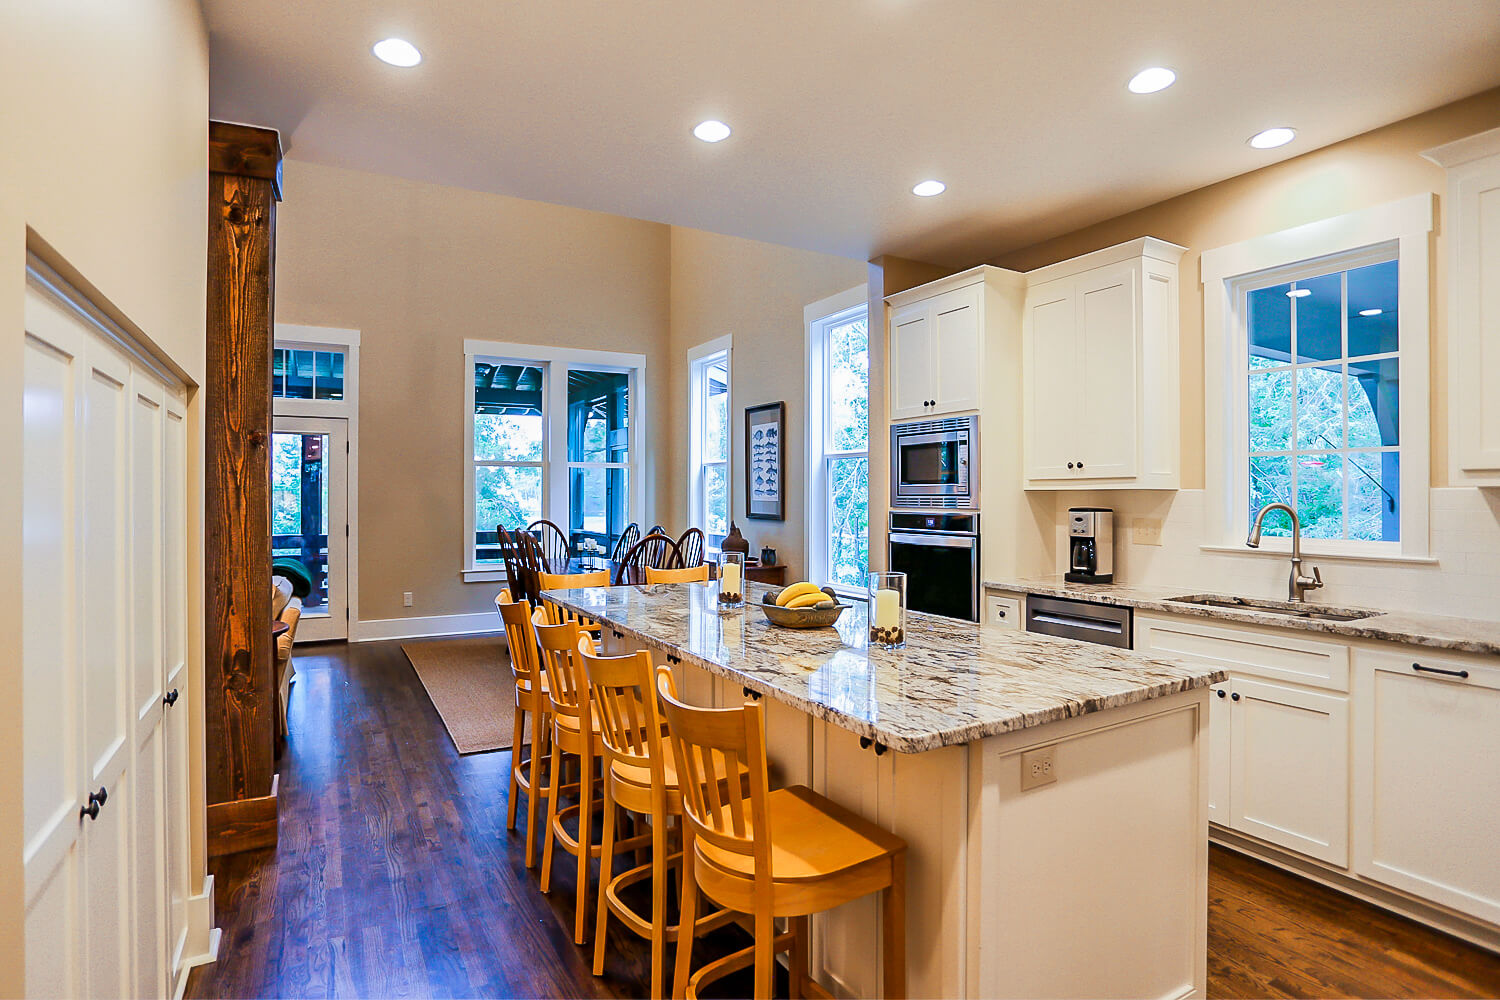 Lake Home - Kitchen Island - Designed by Foshee Architecture